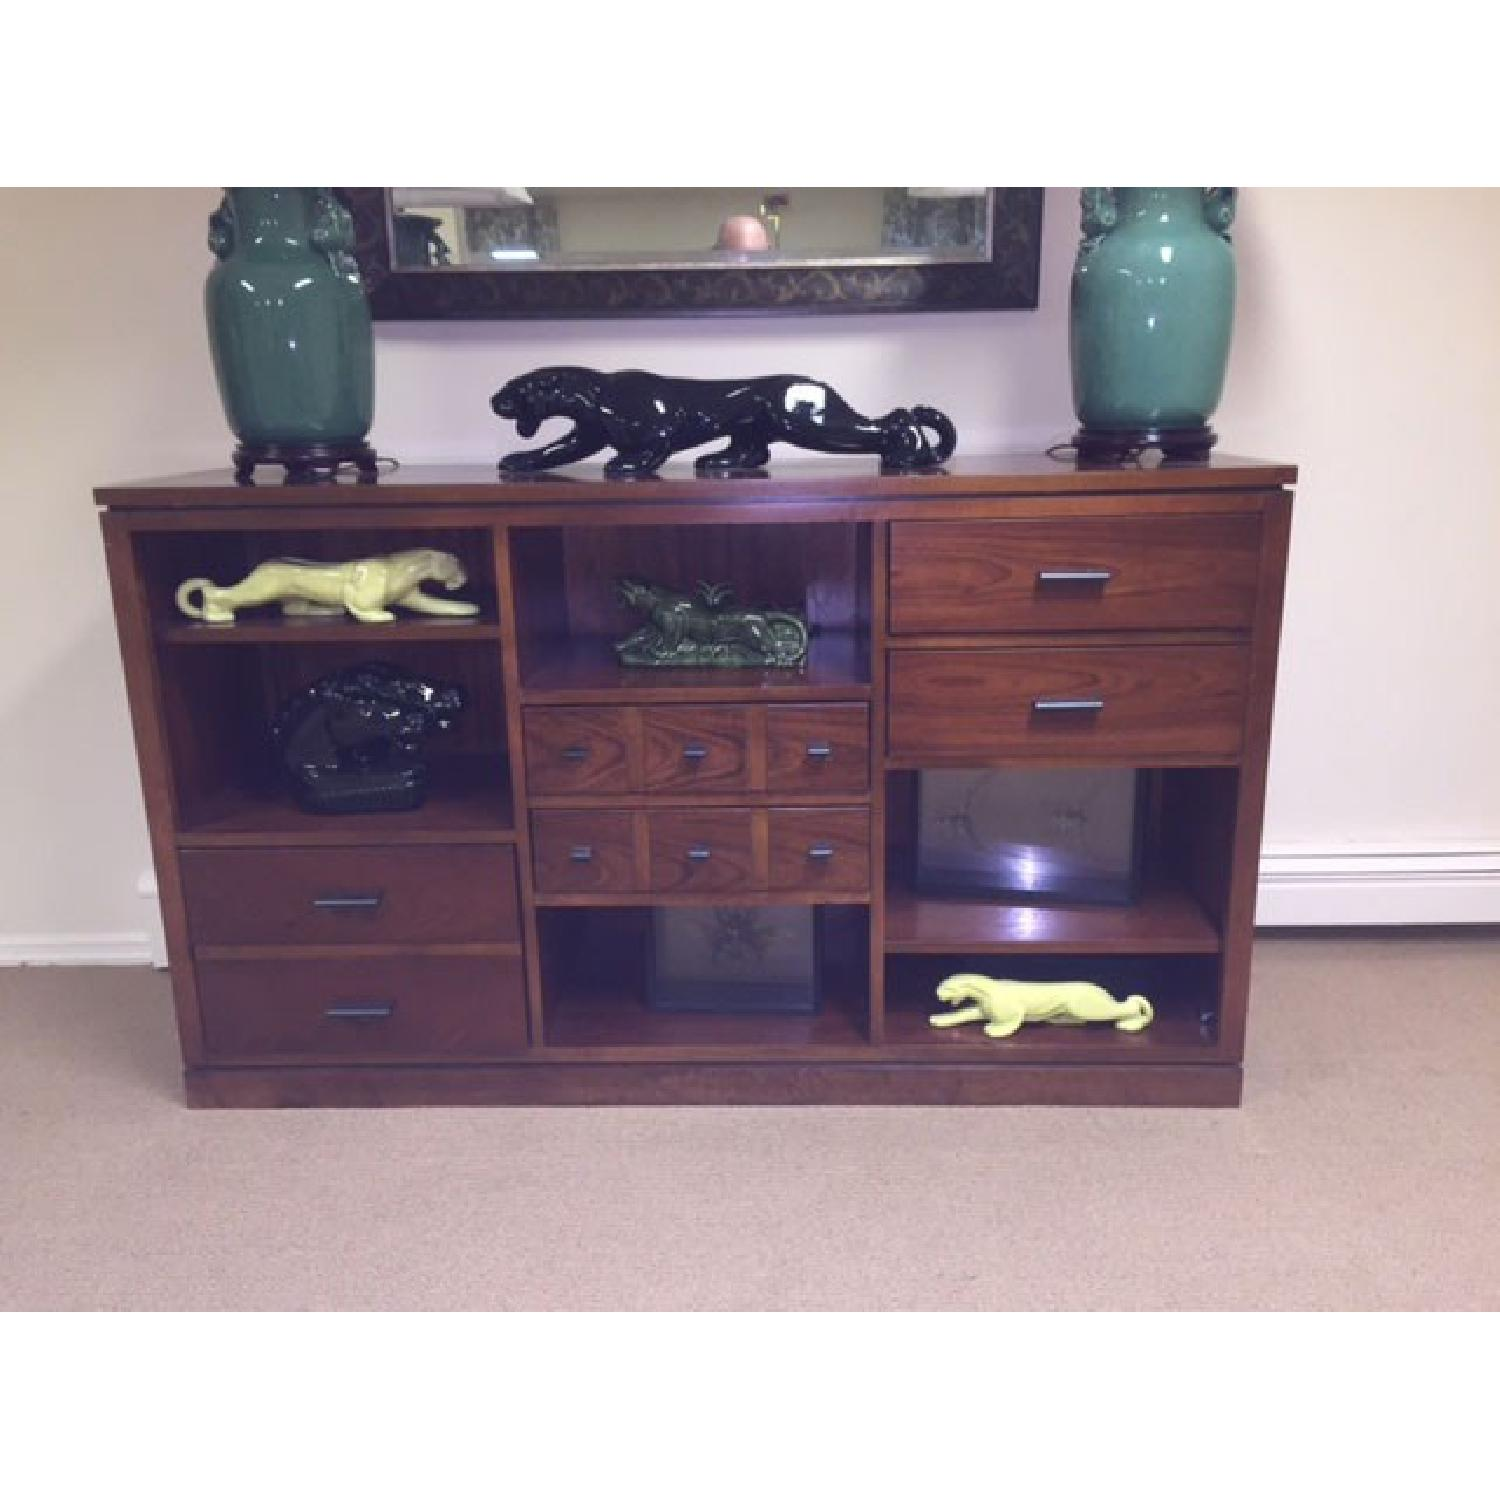 Stanley Furniture Bookcase with Drawer Unit - image-1